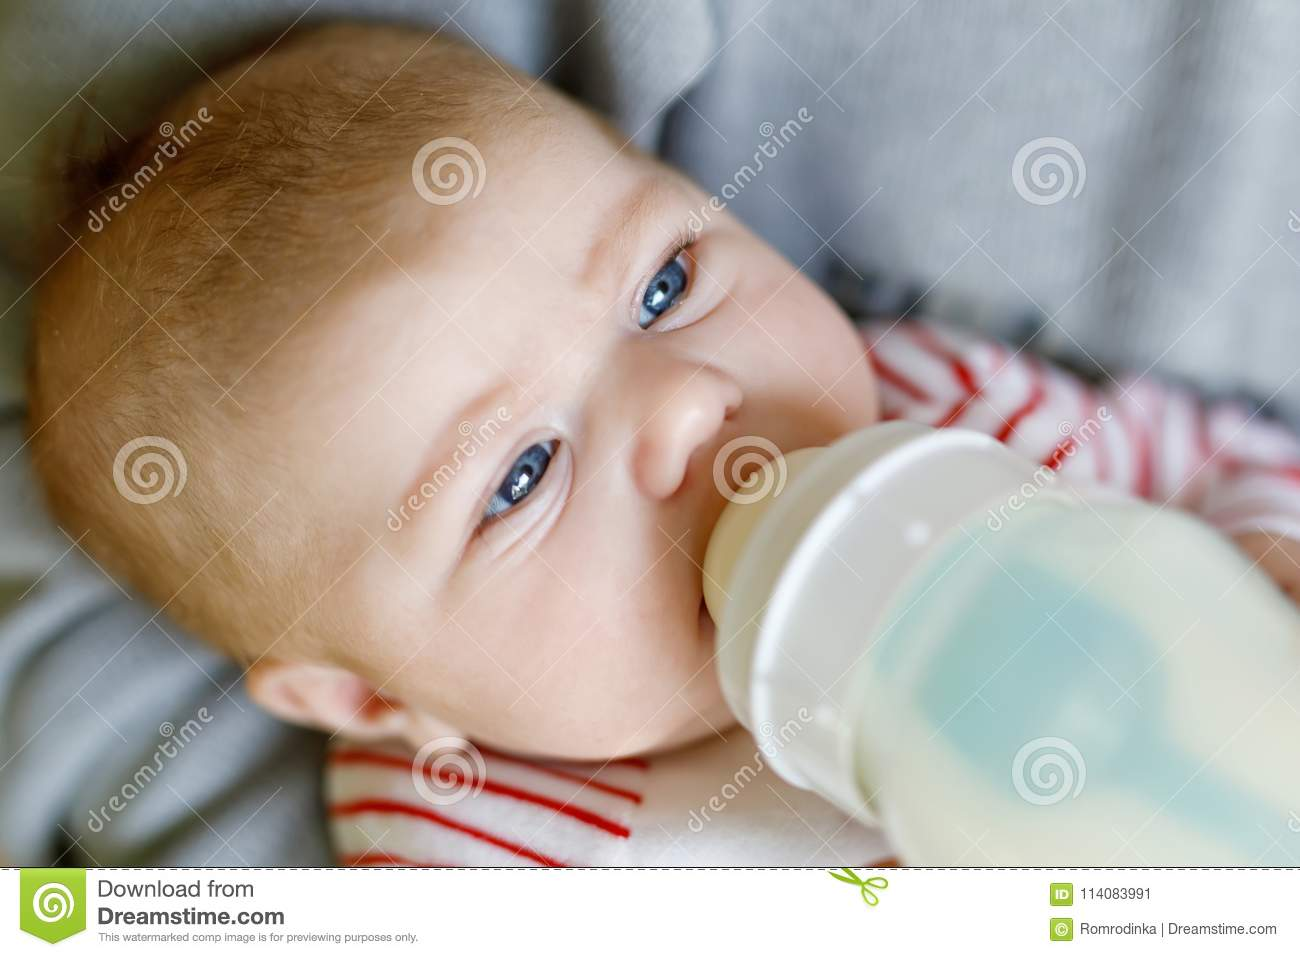 An adult drinking from a baby bottle